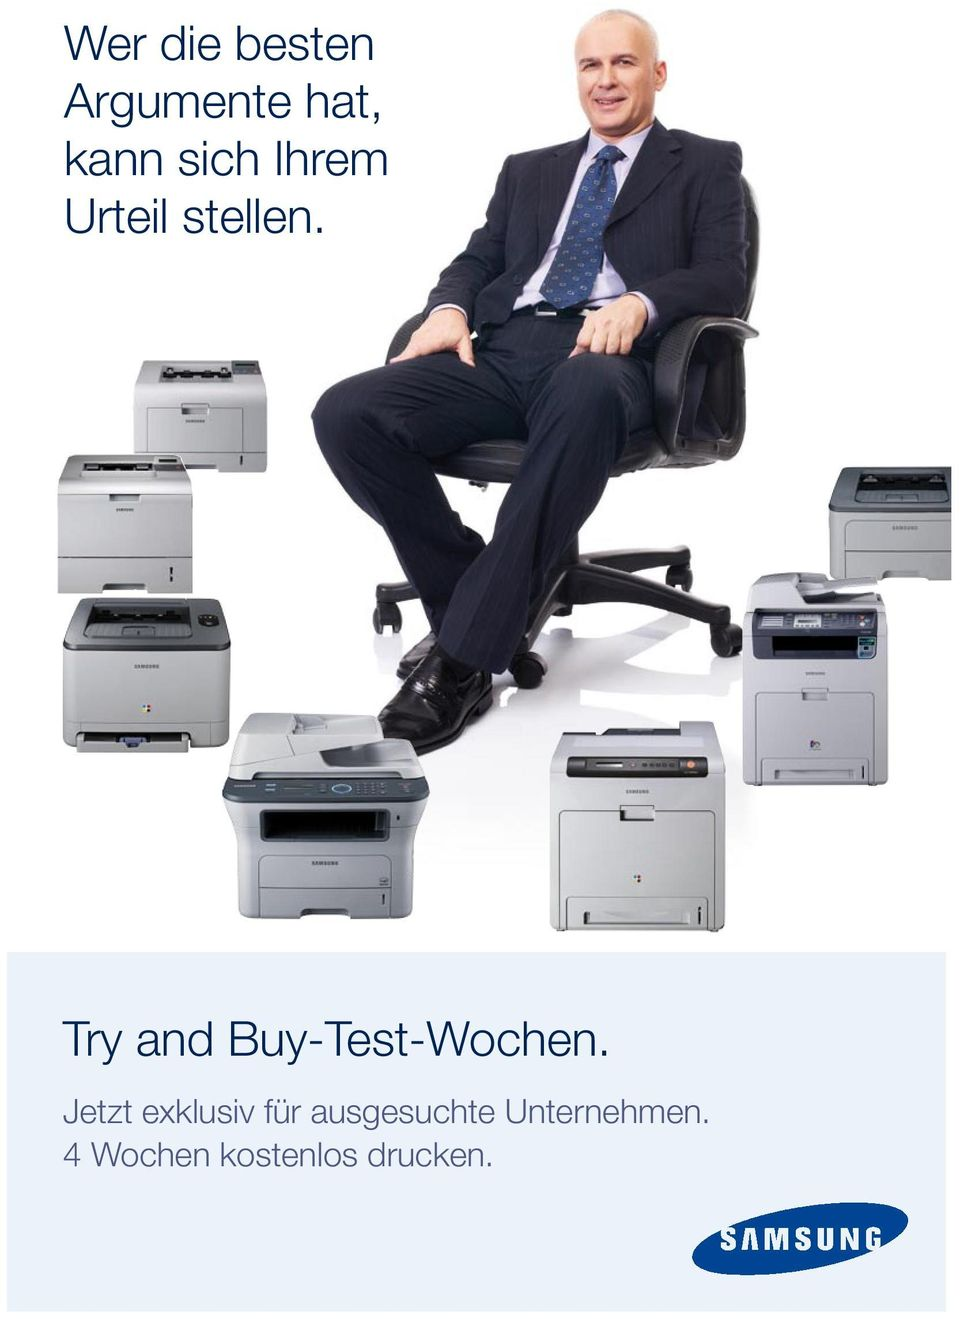 Try and Buy-Test-Wochen.